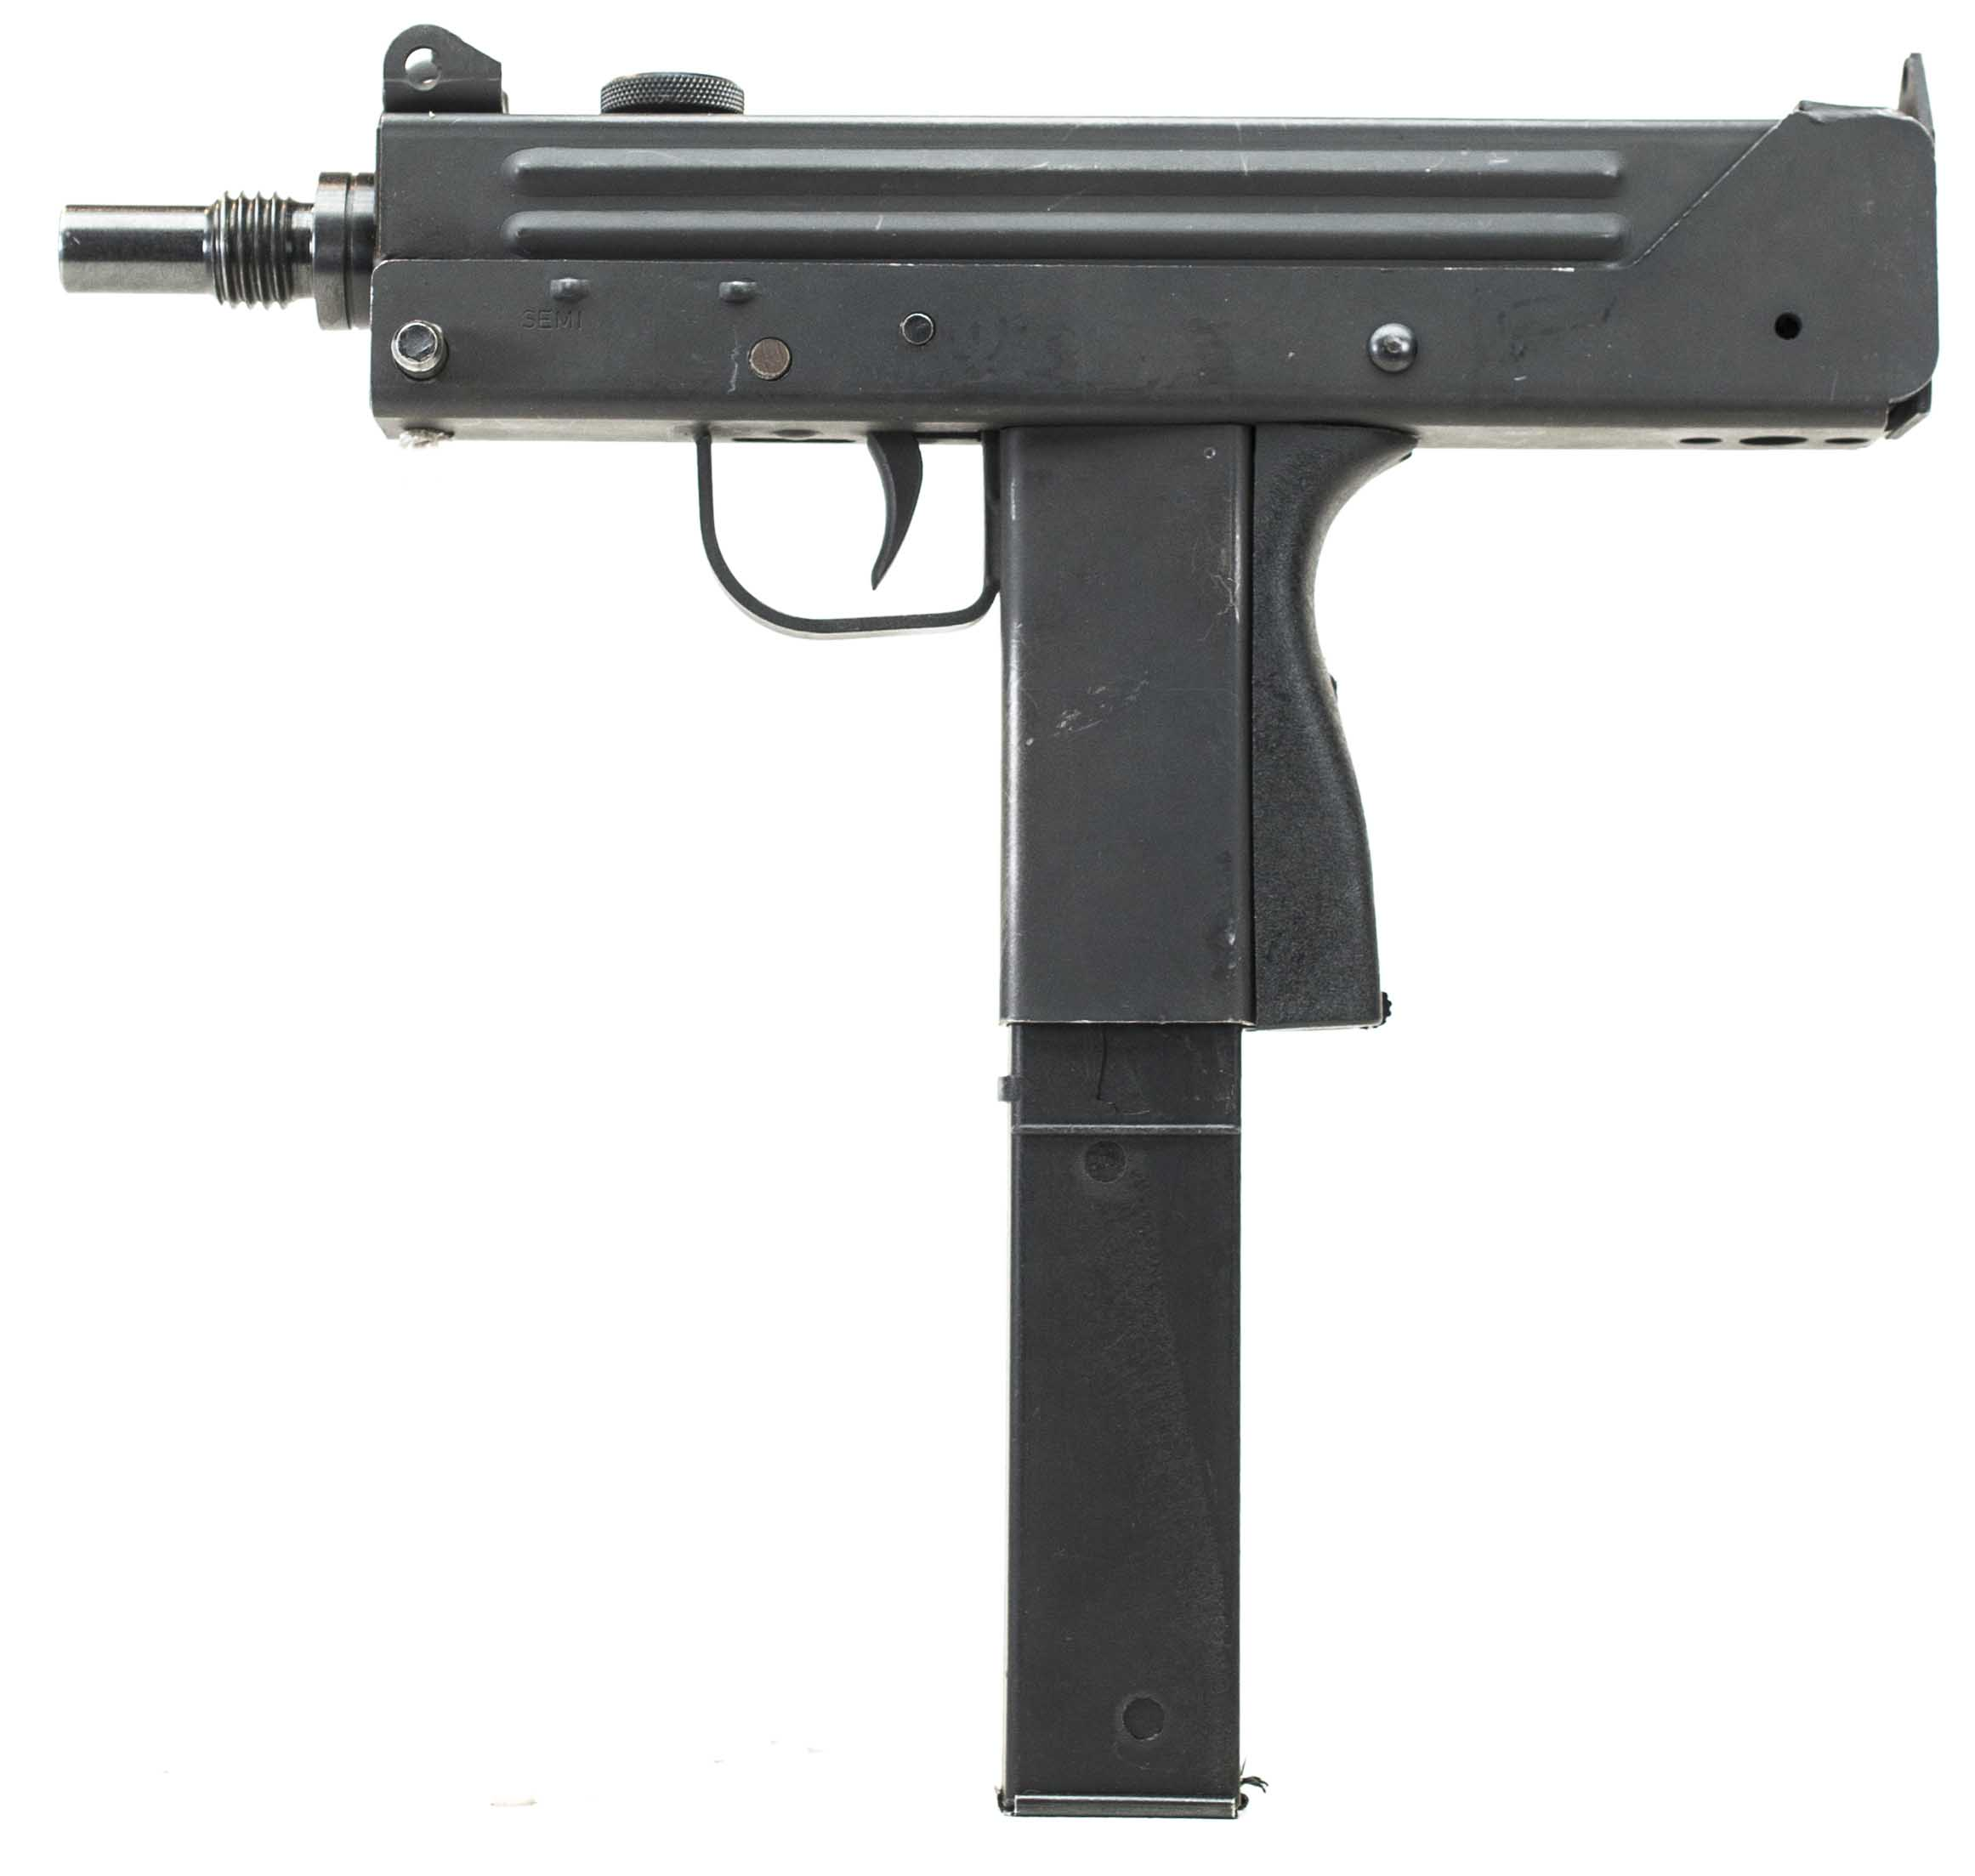 COBRAY M11 9MM (Auction ID: 5484437, End Time : Oct. 02